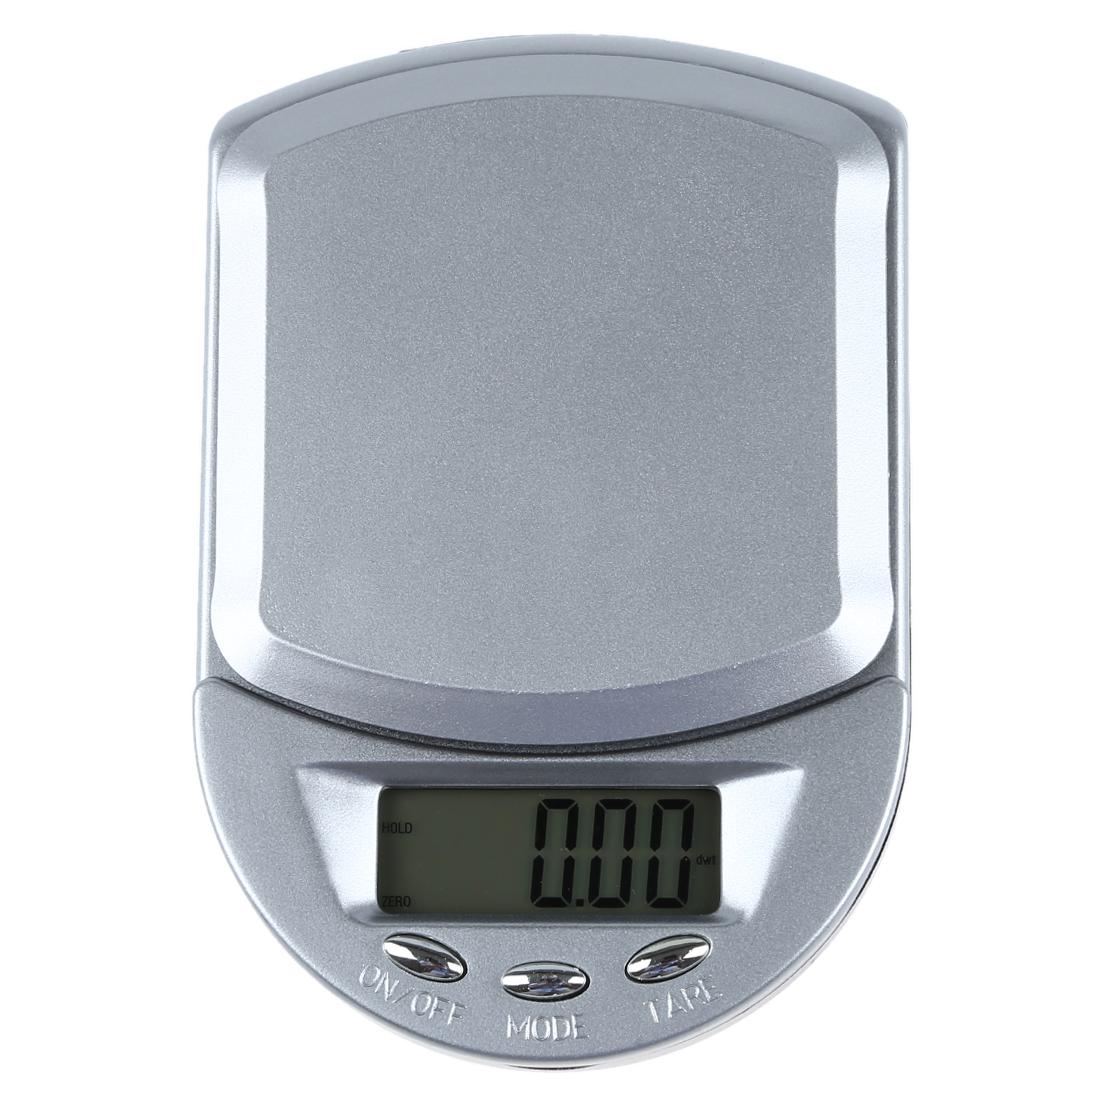 ᗐTHGS 500g / 0.1g Digital Pocket Scale kitchen household accurate ...